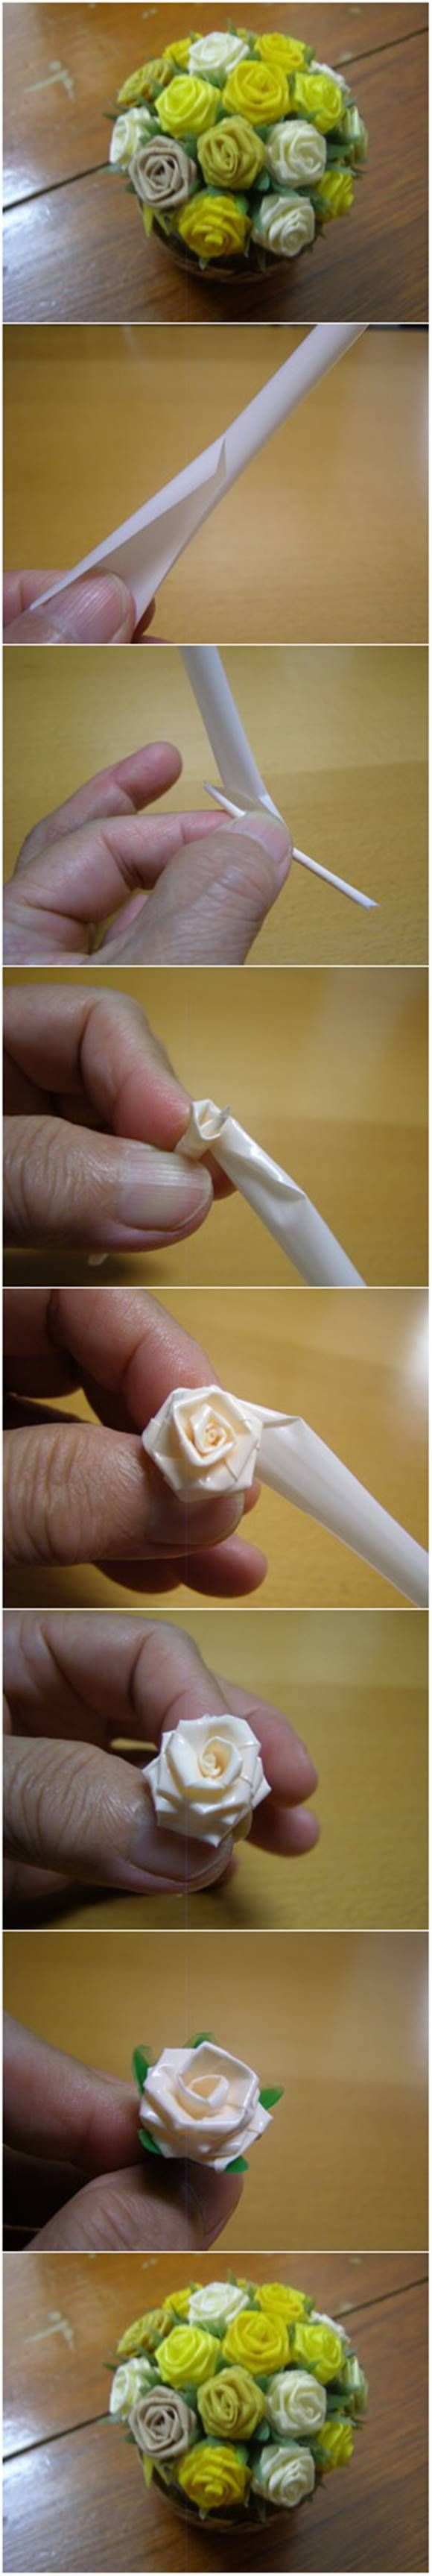 How to Make Beautiful Roses from Drinking Straws #craft #decor #flower                                                                                                                                                     More